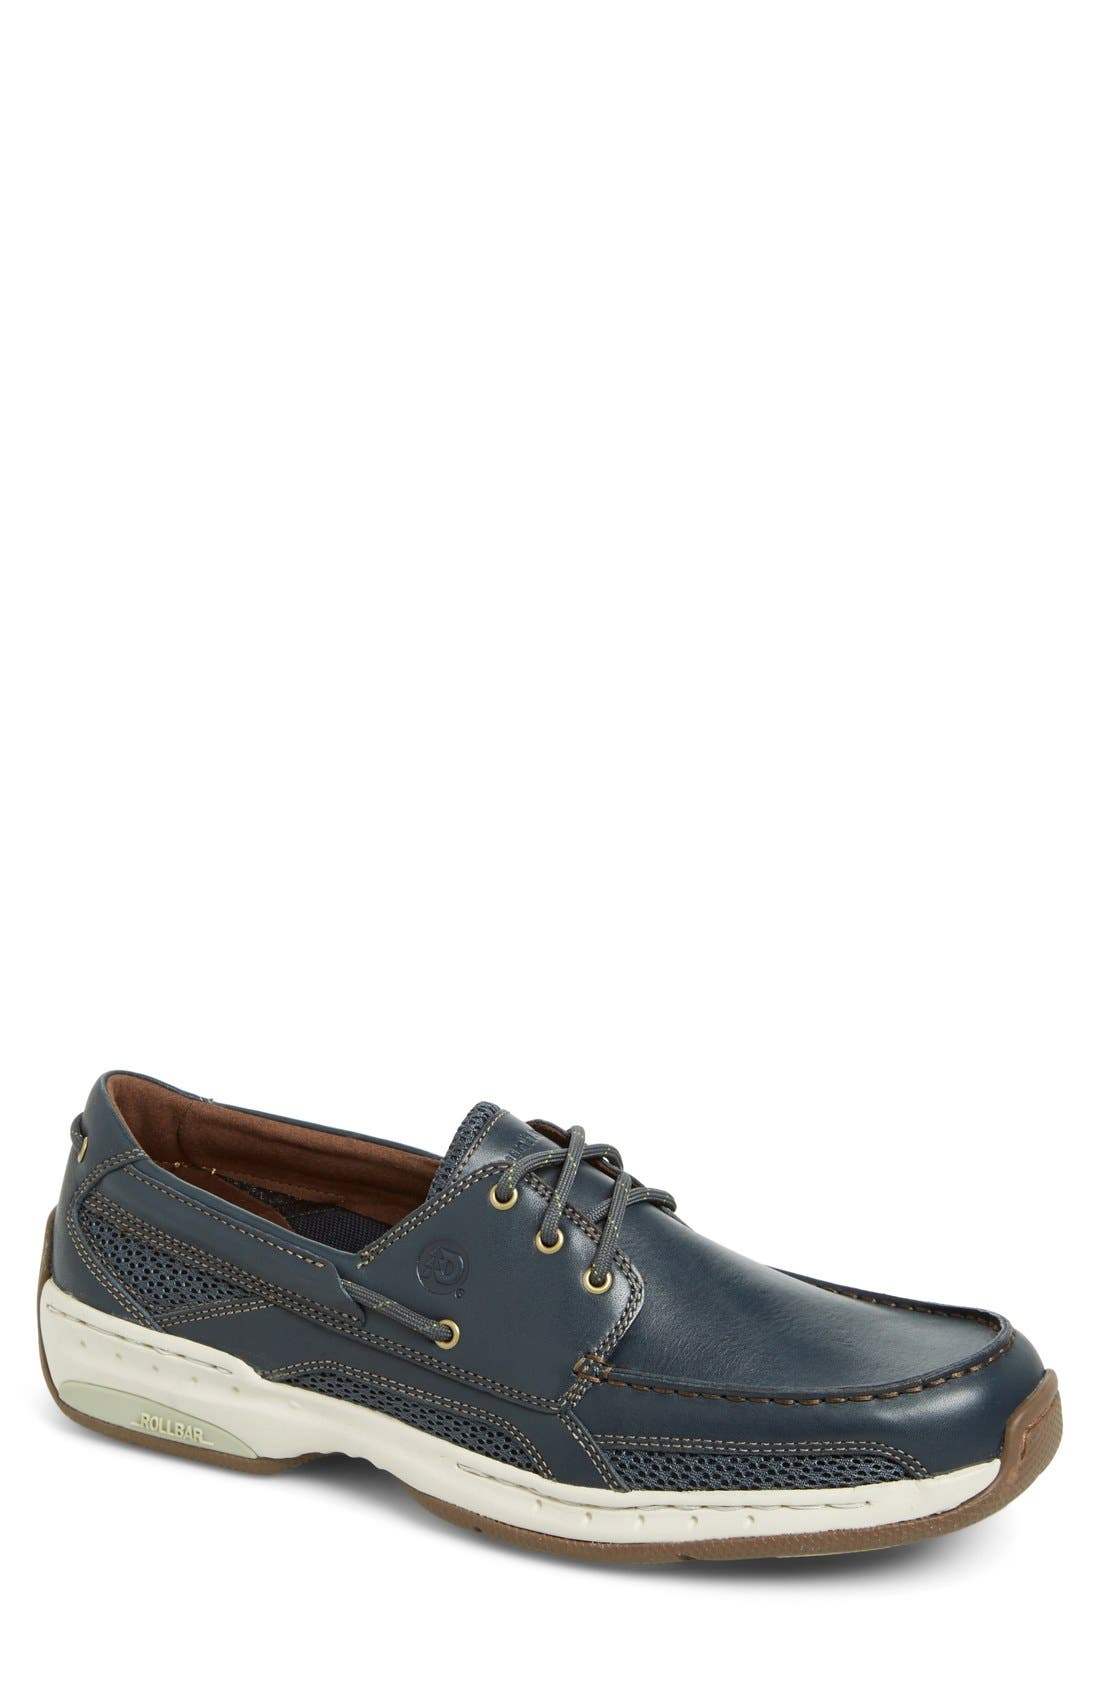 'Captain' Boat Shoe,                         Main,                         color, NAVY